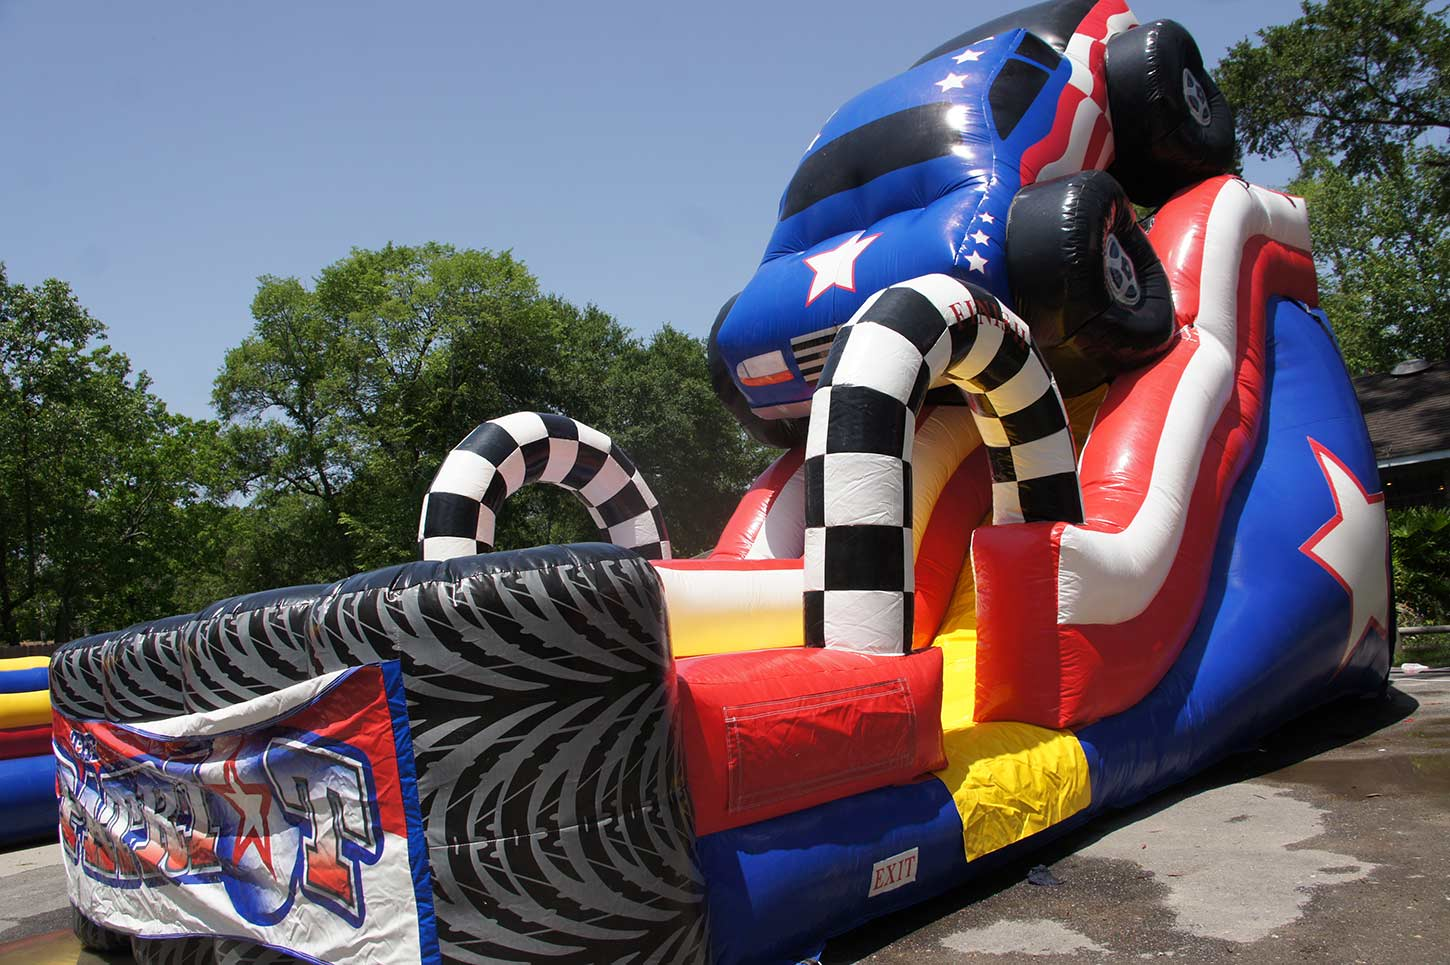 Monster Truck Waterslide Rental